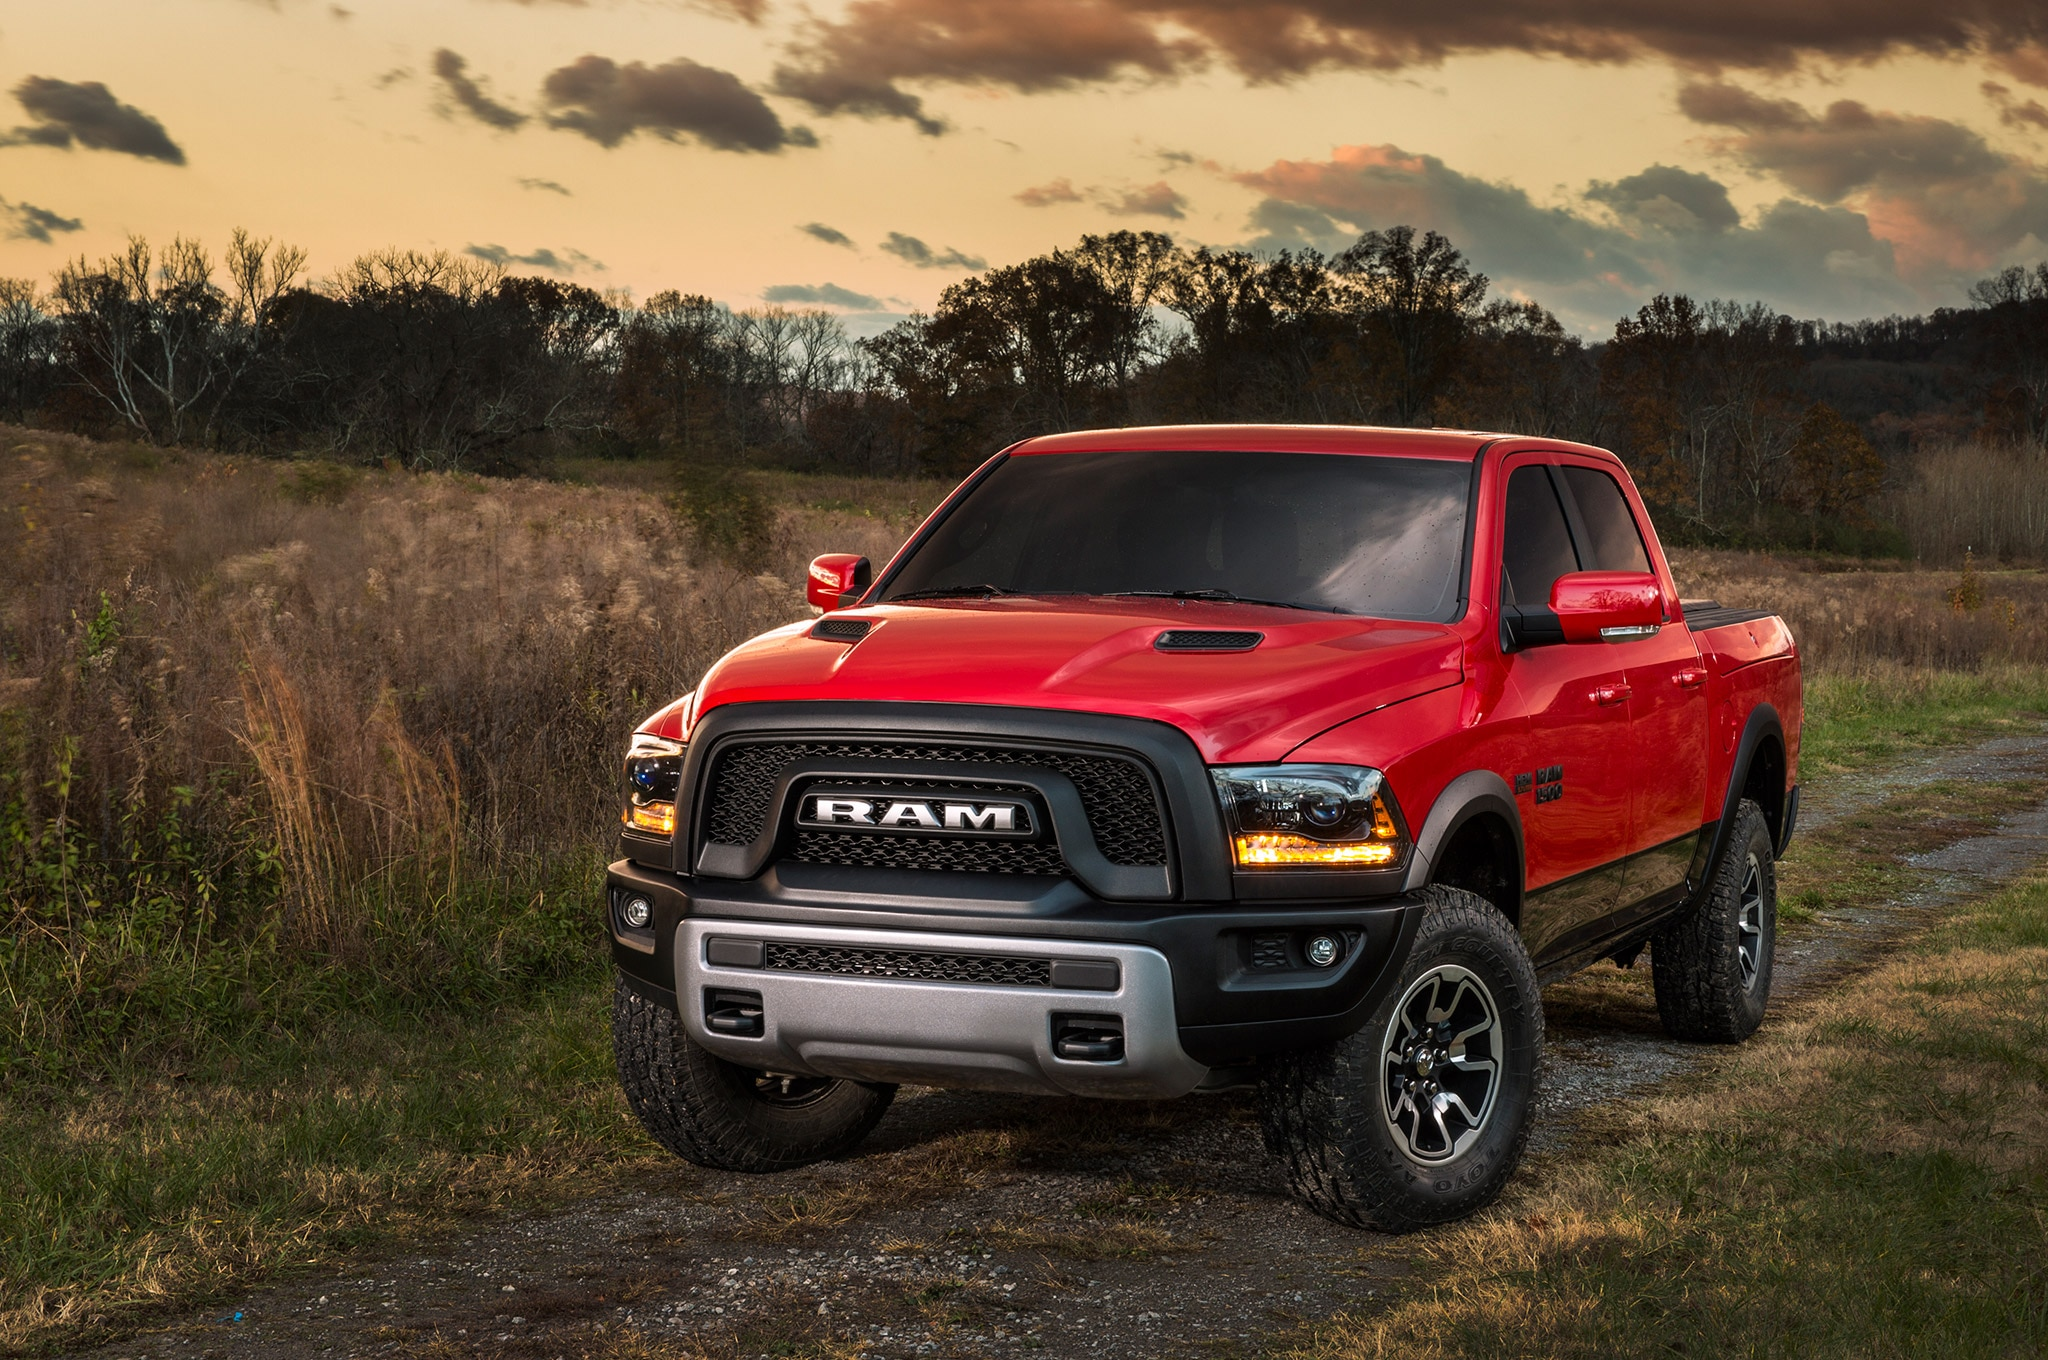 The Ram Rebel brings one-of-a-kind off-road design to the full-size ...